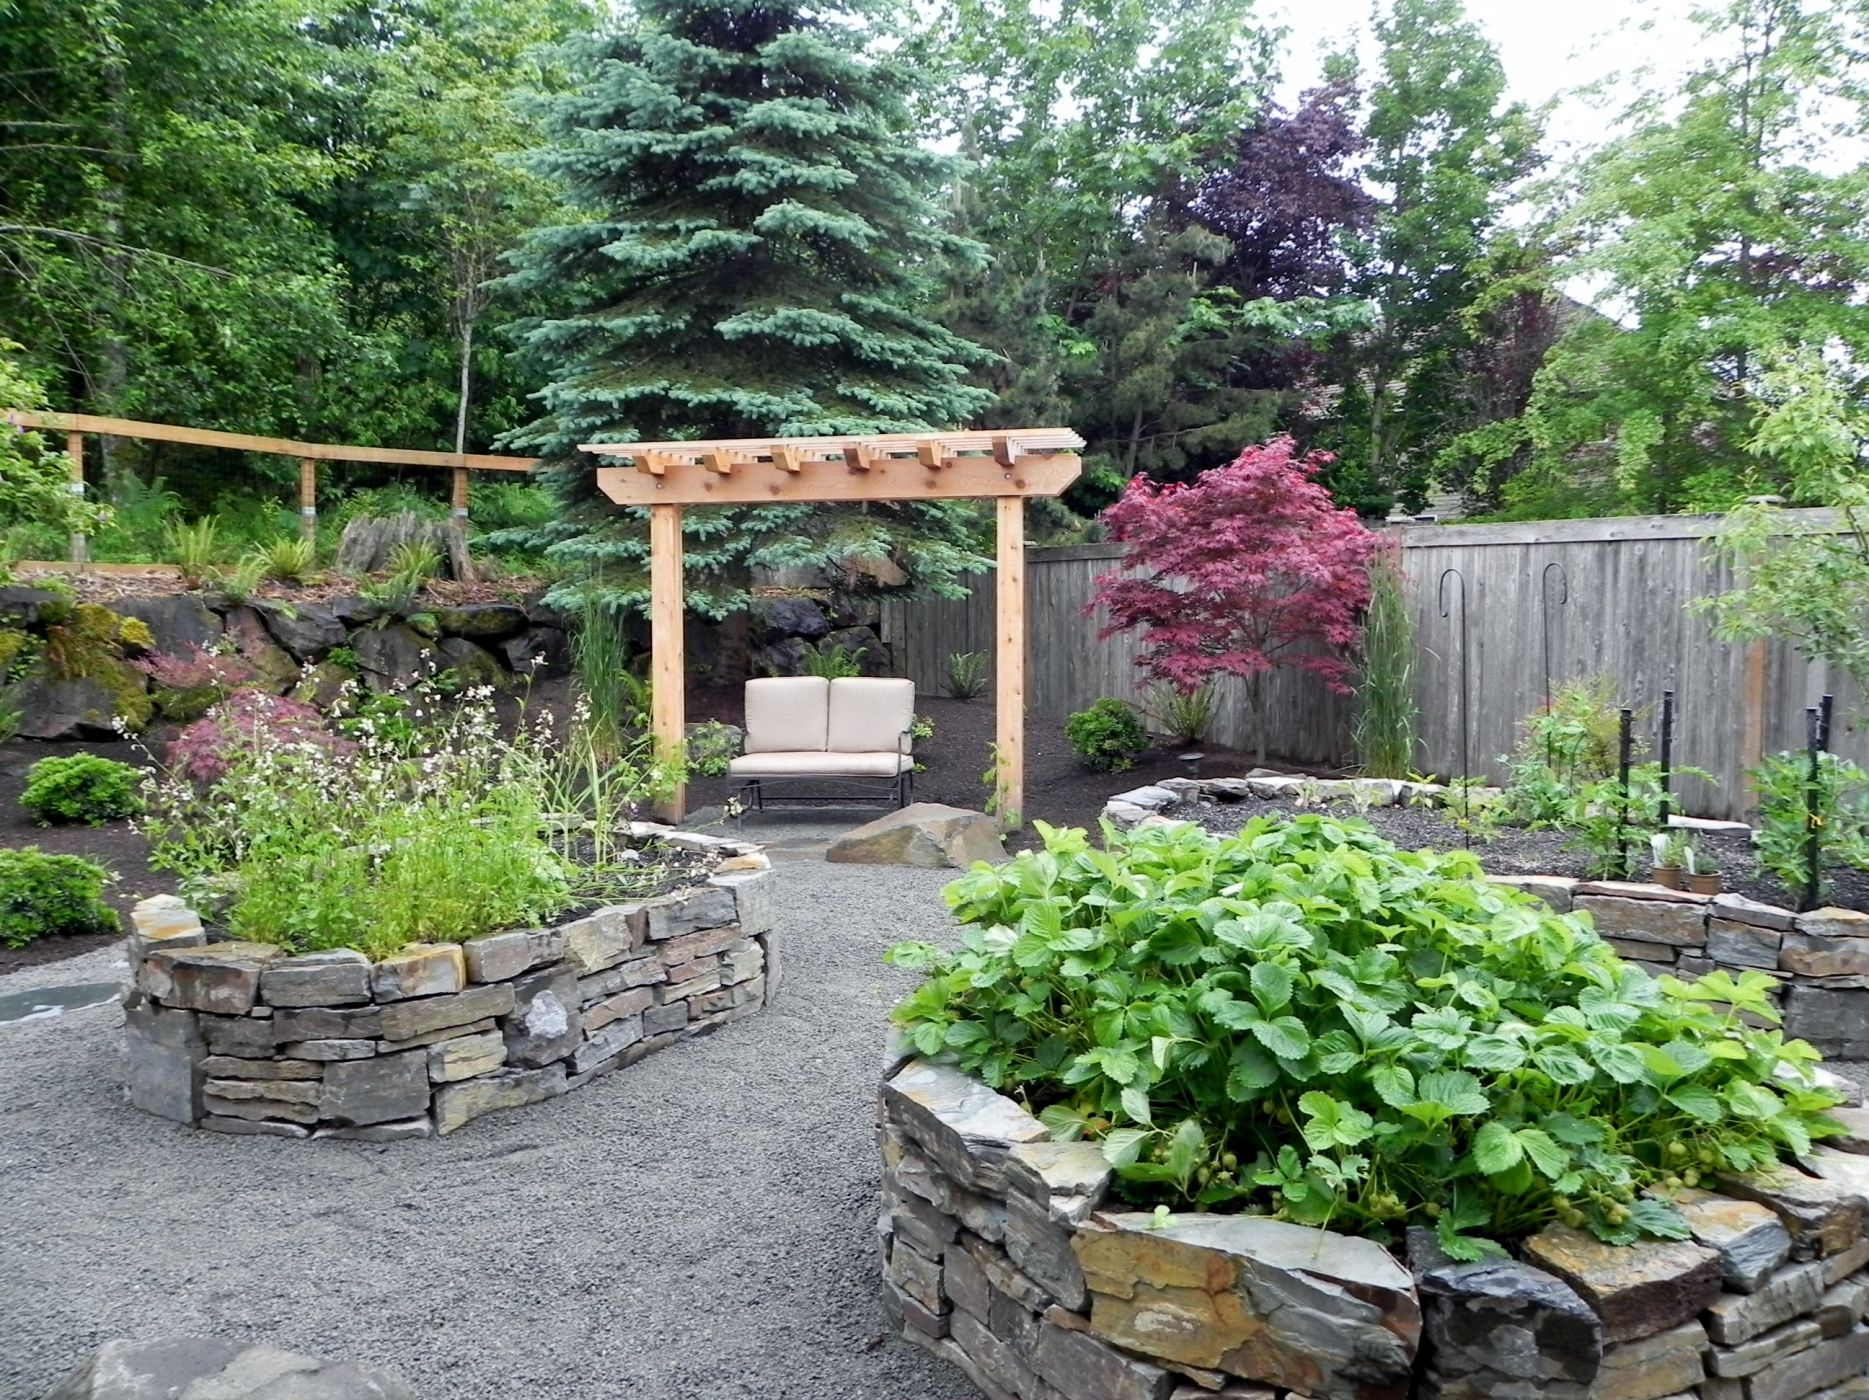 Sammamish raised vegetable beds sublime garden design landscape design landscape - Landscape design for small spaces style ...